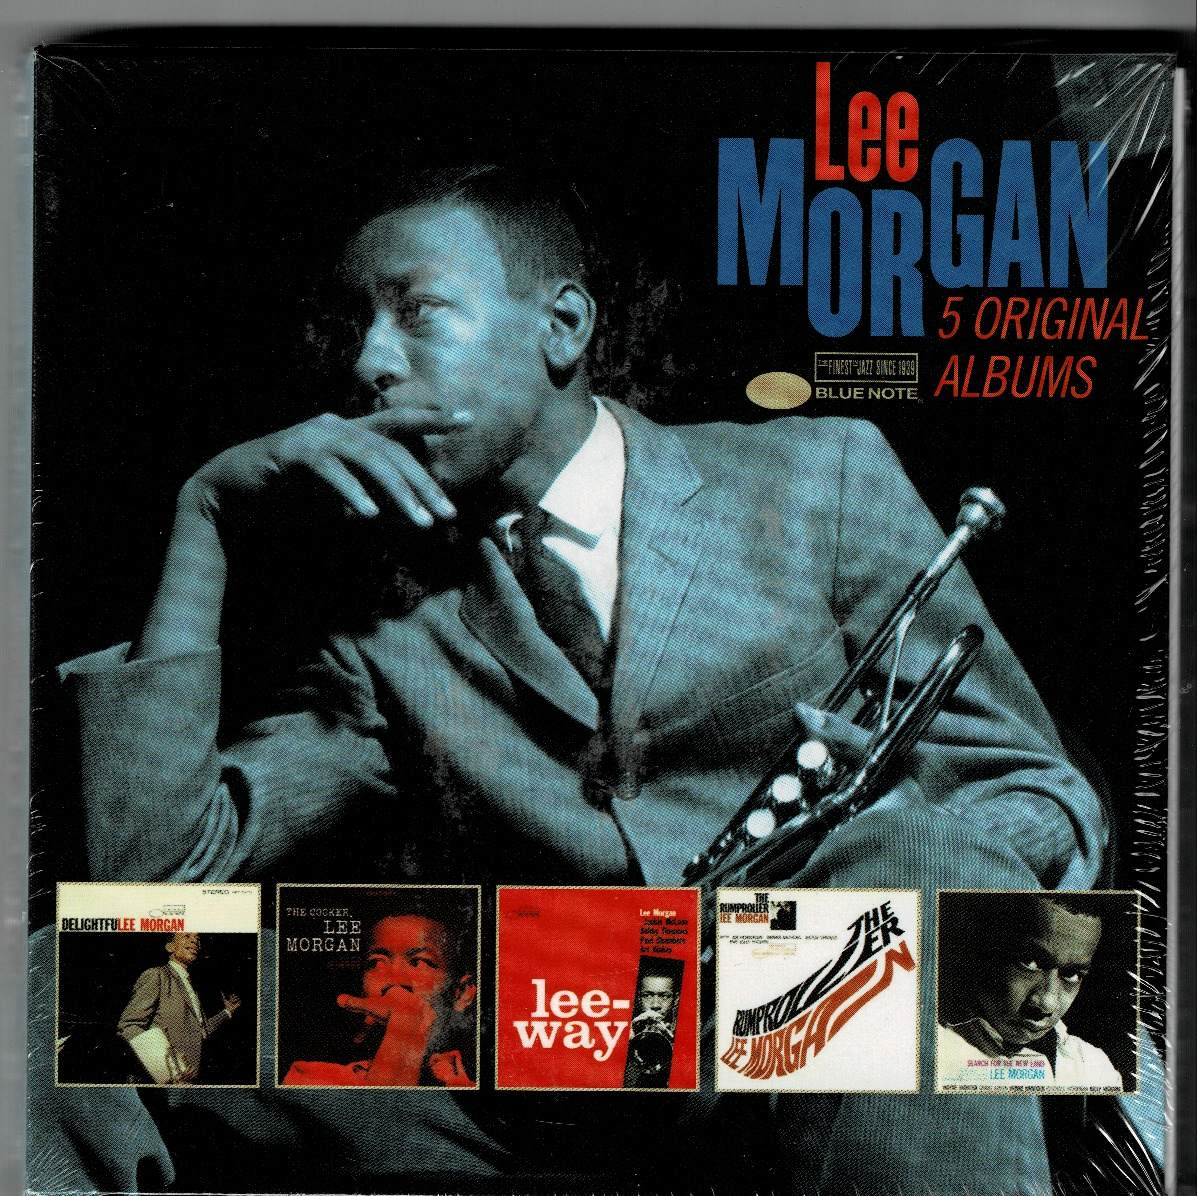 Image result for lee morgan 5 original albums